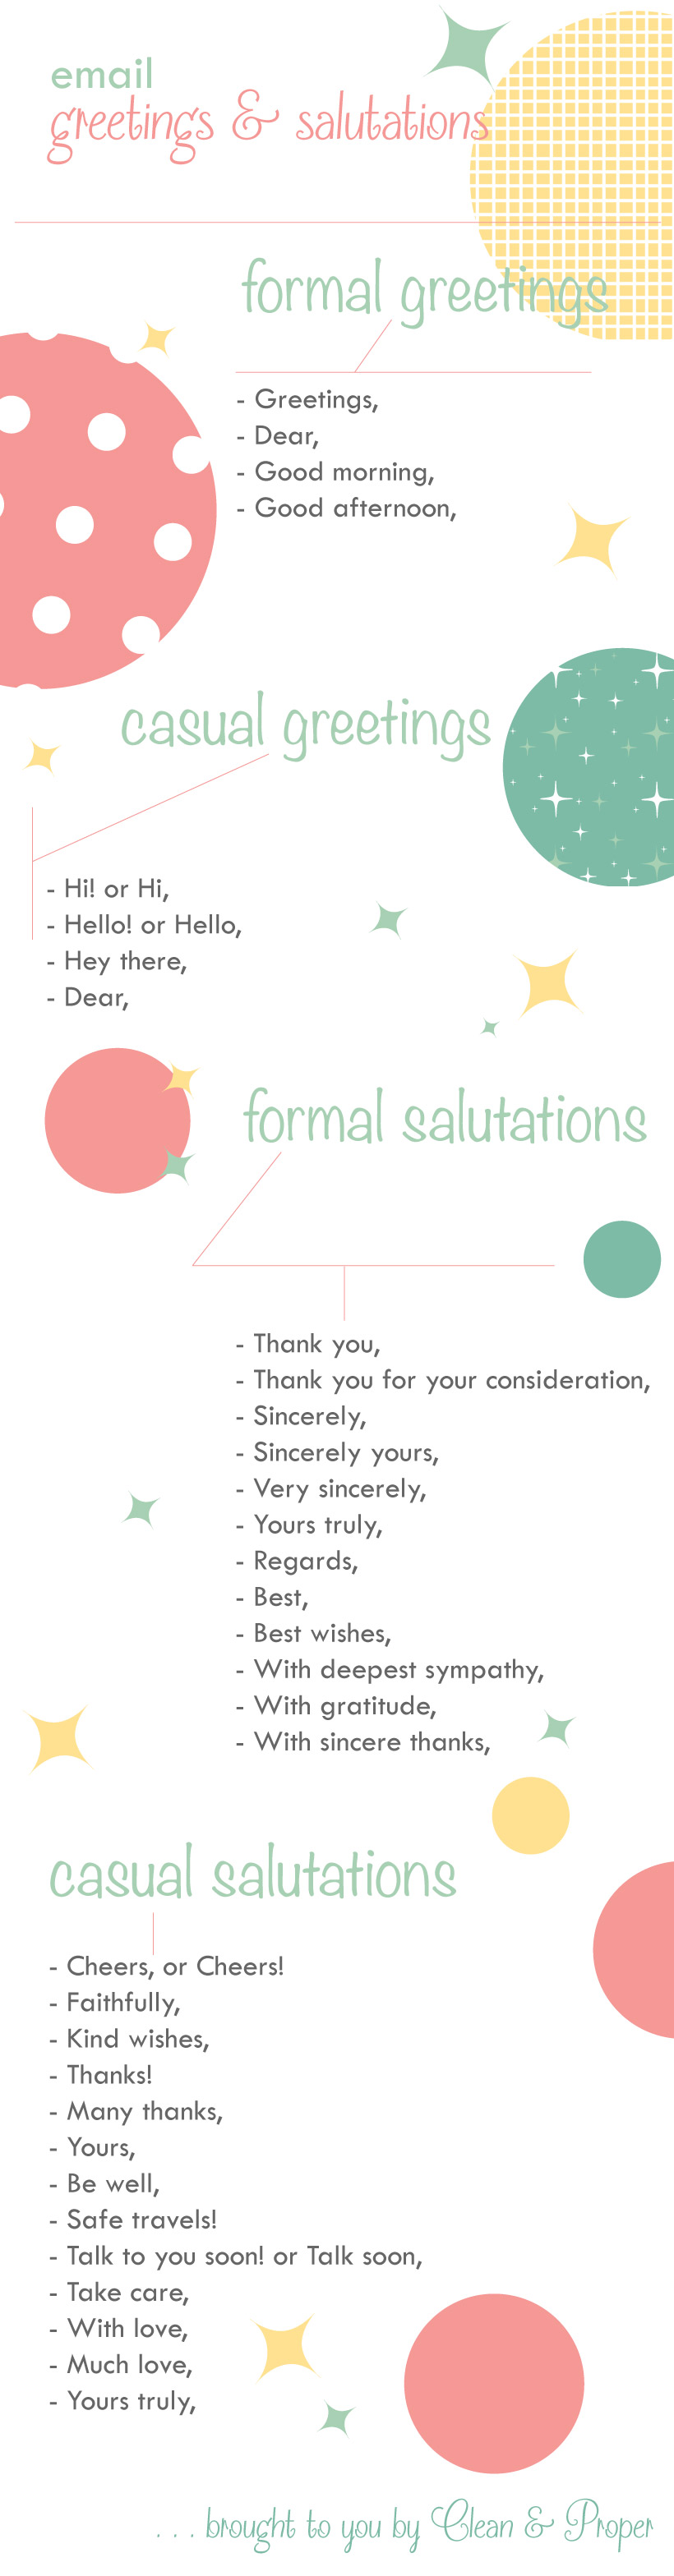 Email greetings and salutations etiquette manners correspondence the best email greetings and closing salutations m4hsunfo